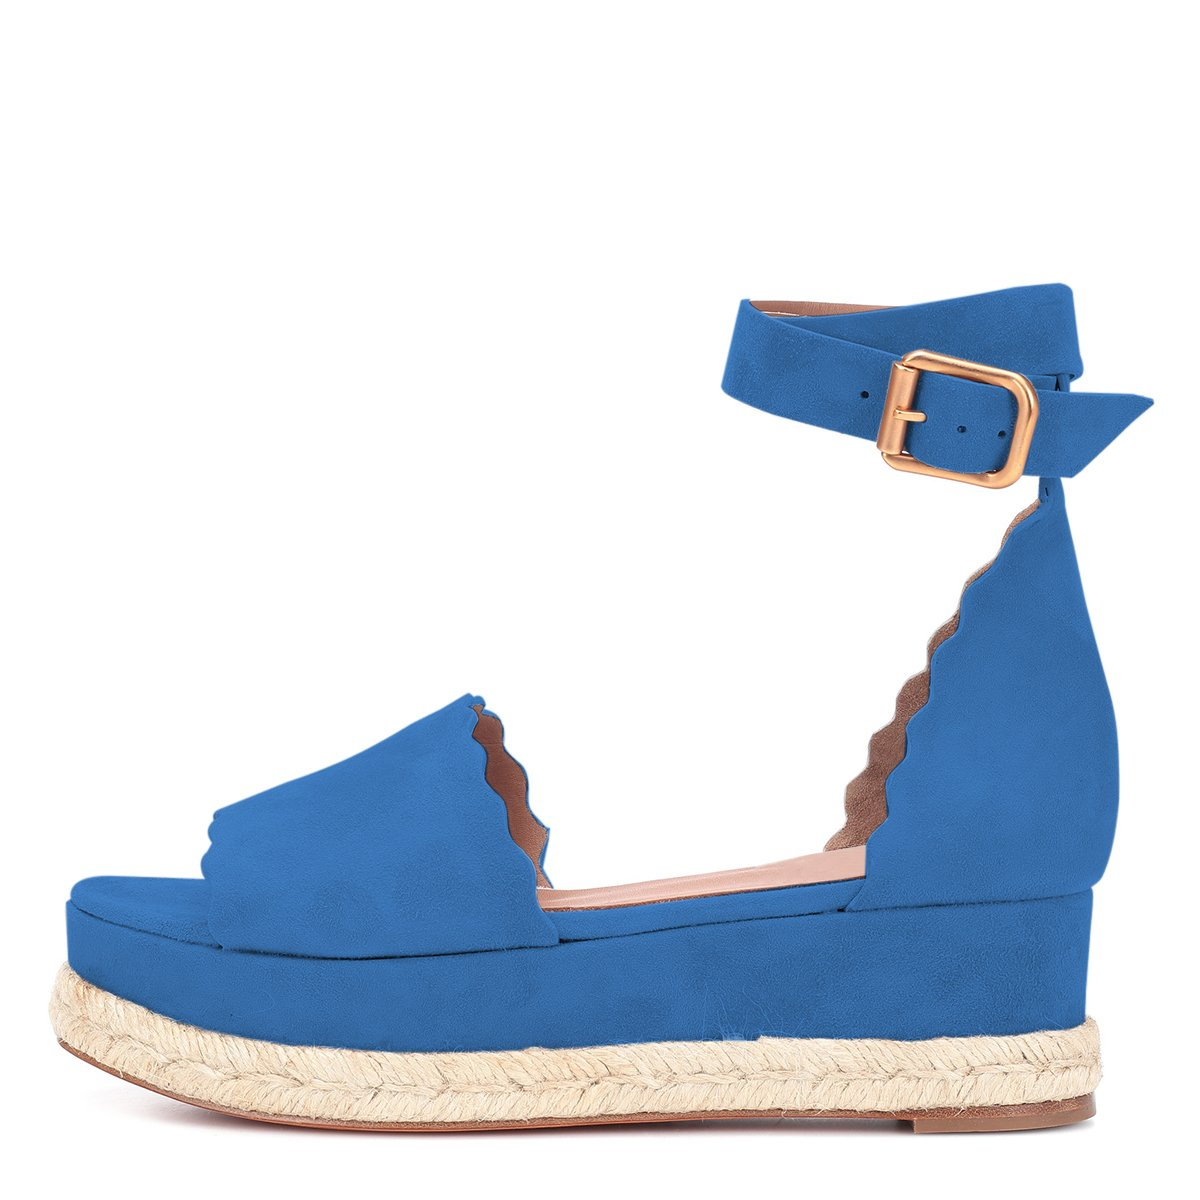 YDN Women Espadrille Peep Toe Ankle Straps Wedge Sandals Low Heels Platform Shoes with Buckle B07DCNB4MZ 14 M US|Blue